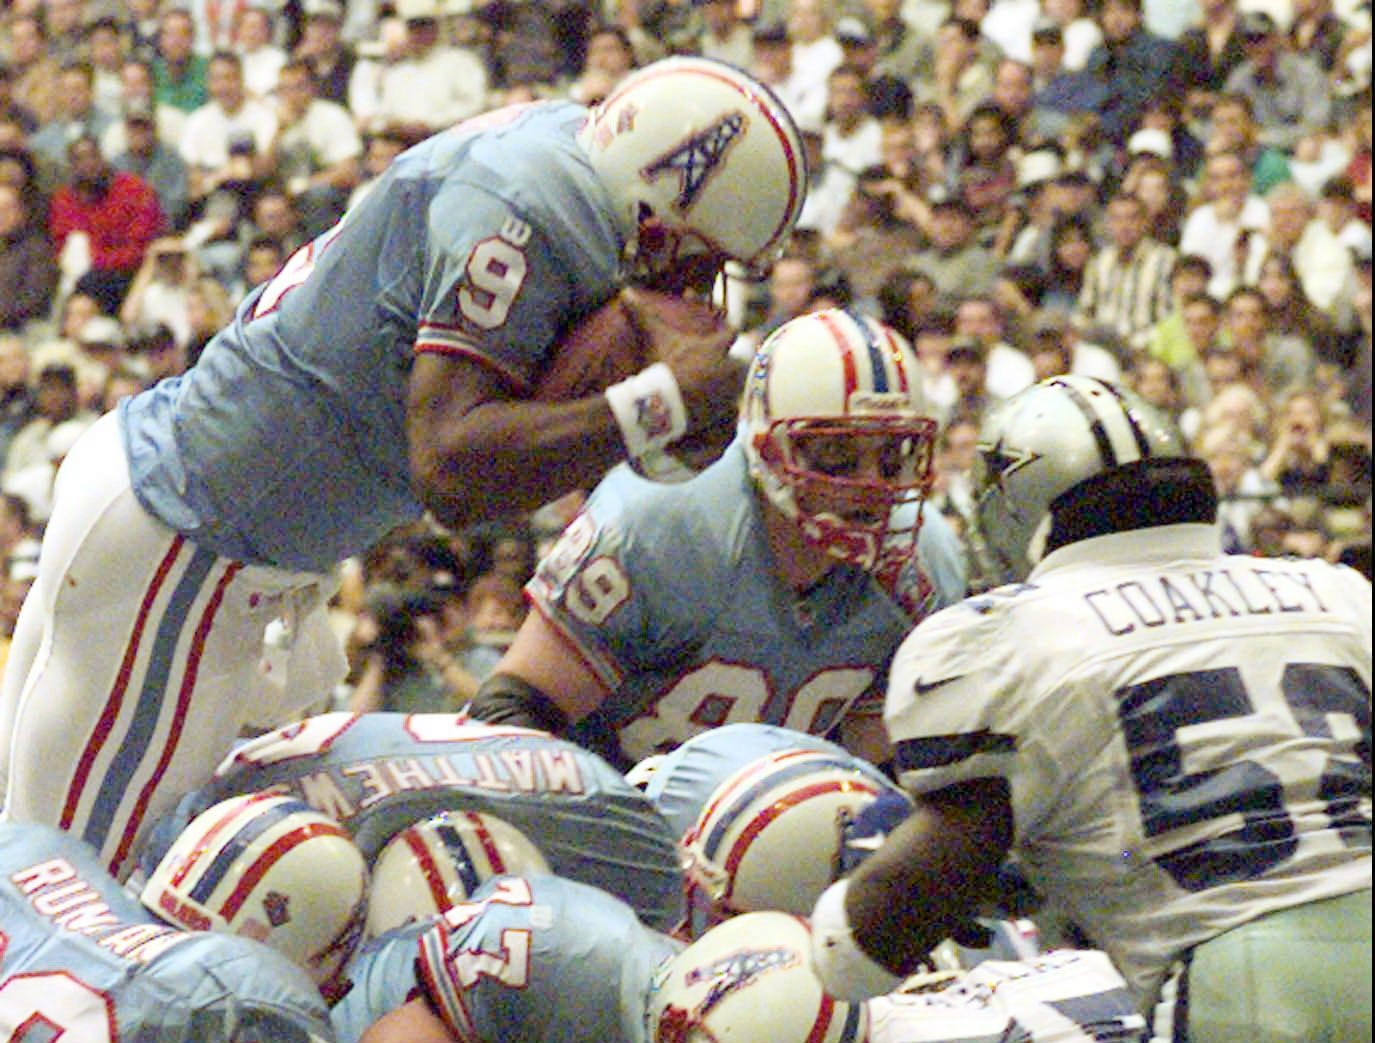 Tennessee Oilers quarterback Steve McNair (9), jumps over the heap to score a touchdown against the Dallas Cowboys during the first quarter of their Thanksgiving game Nov. 27, 1997 in Irving, Texas.